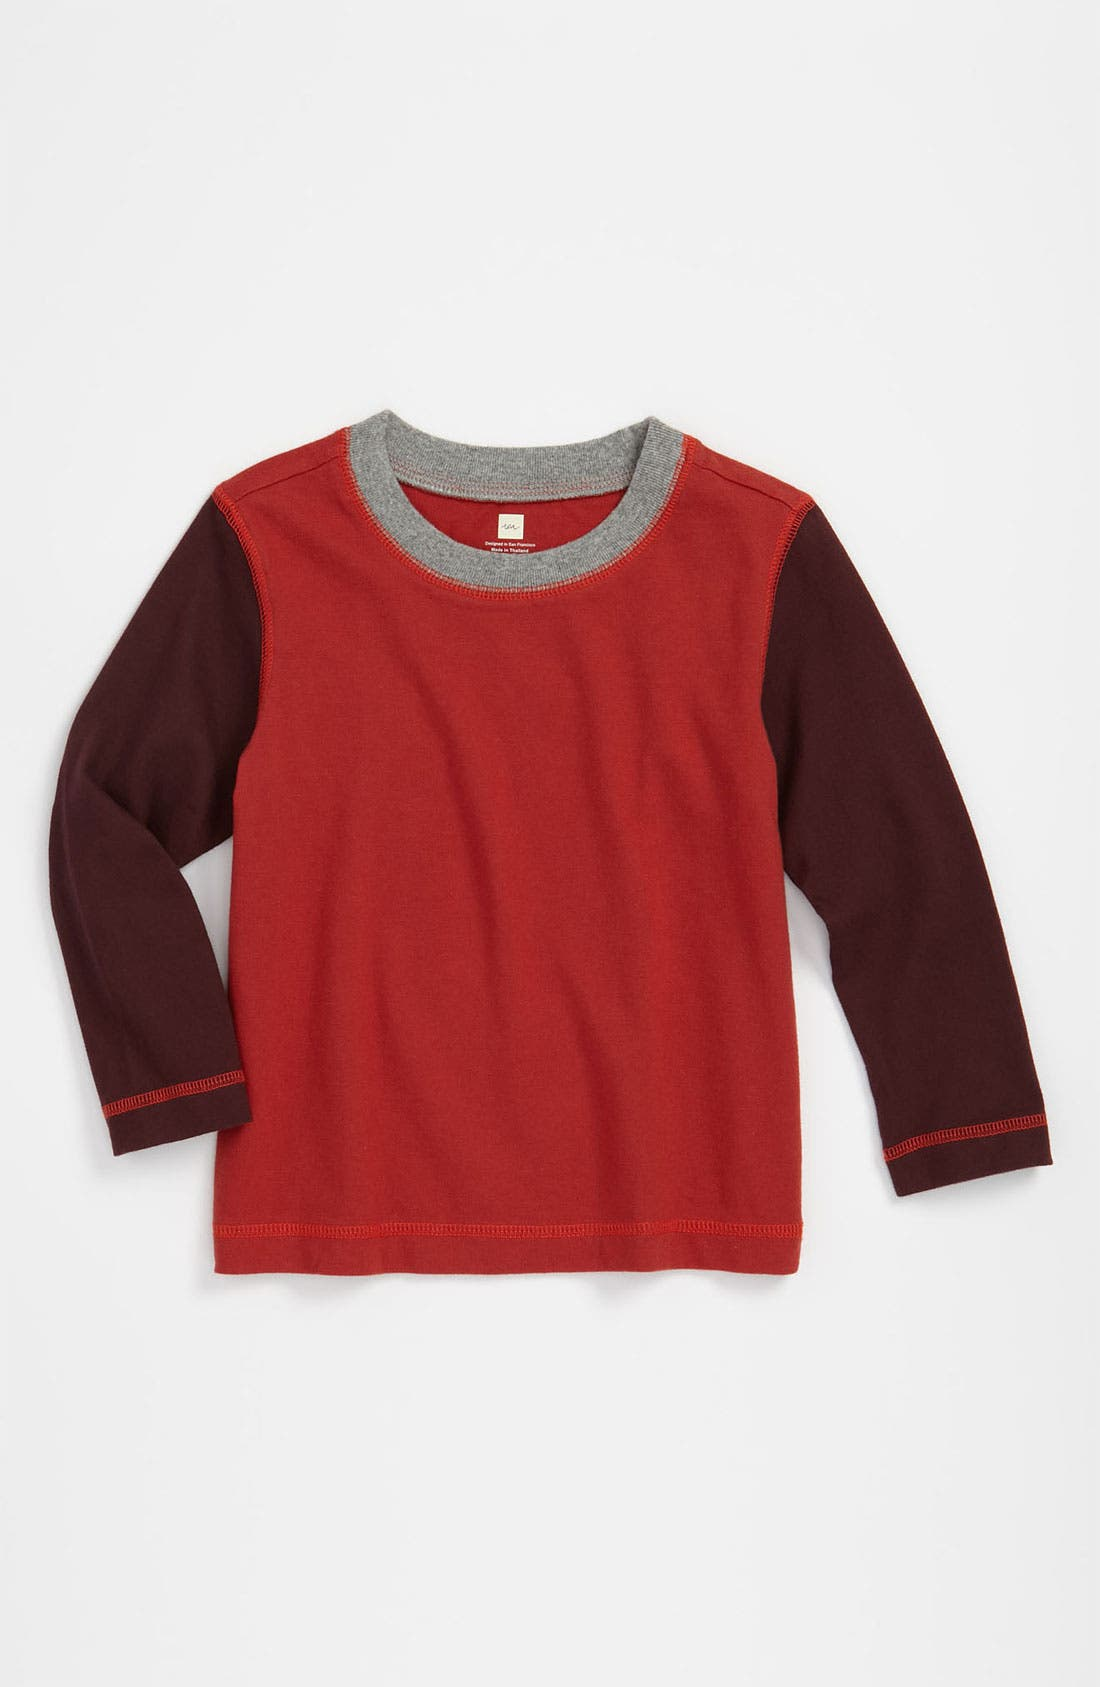 Alternate Image 1 Selected - Tea Collection 'Cool Colorblock' T-Shirt (Infant)